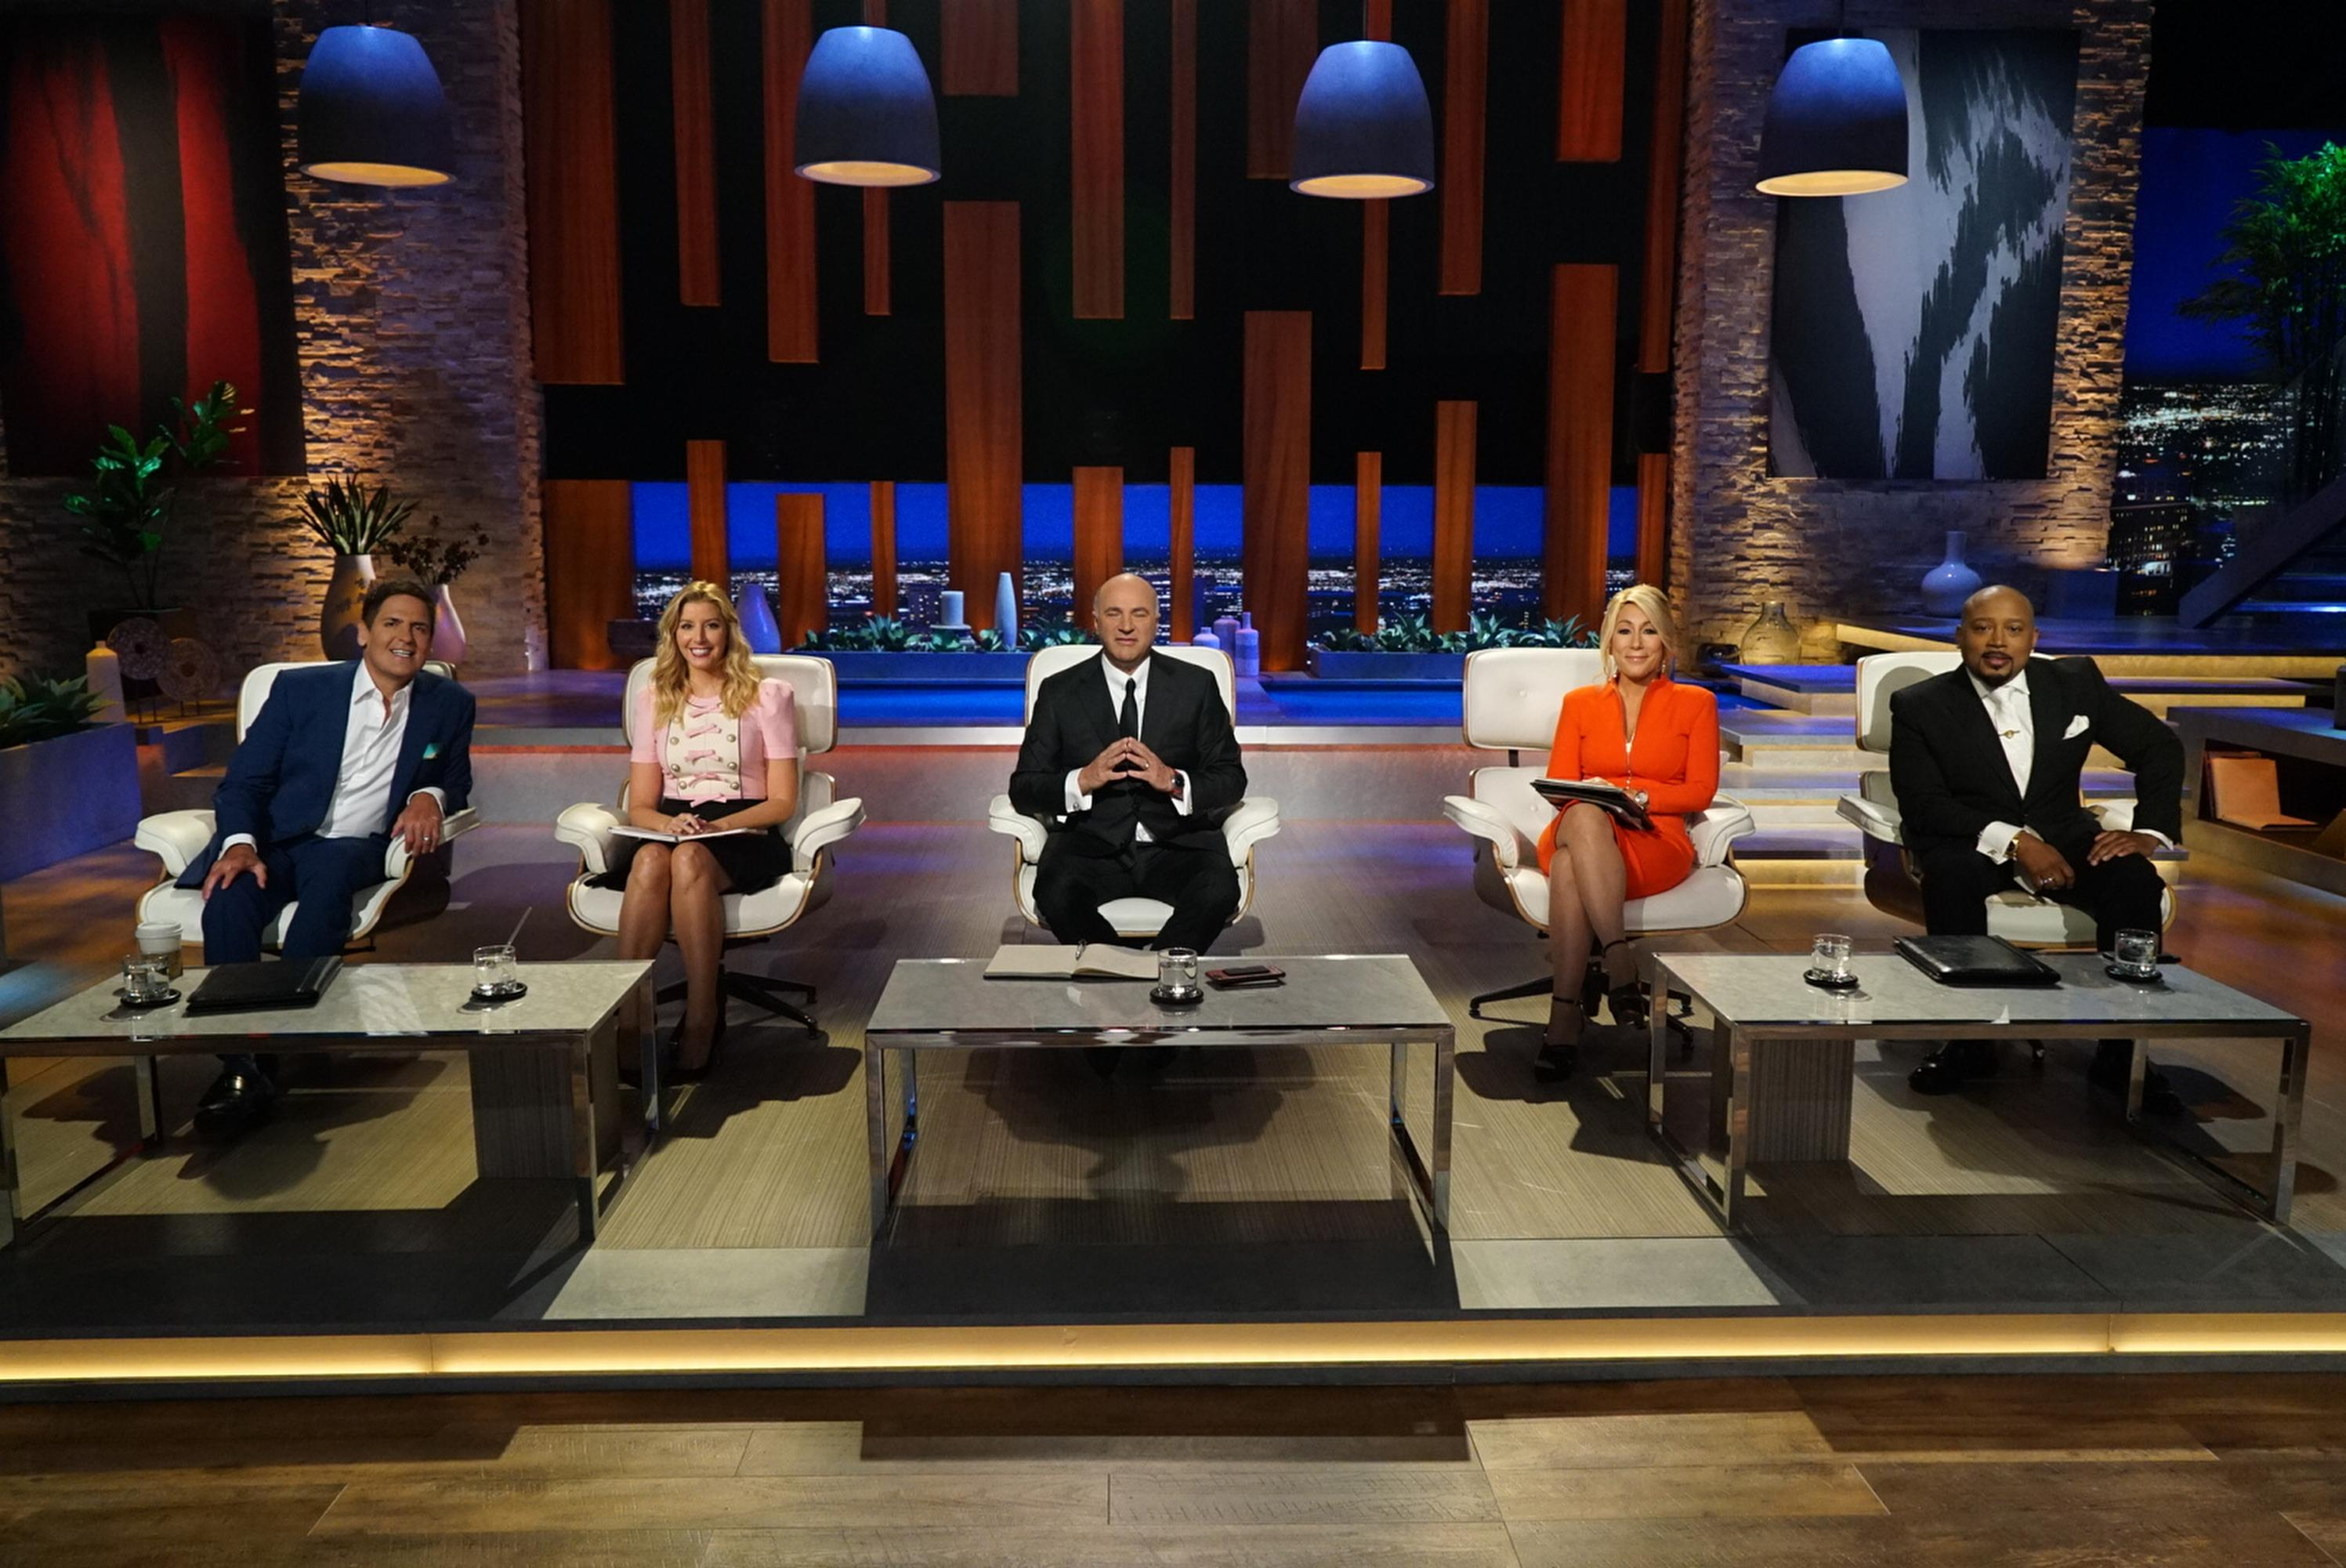 Shark Tank will be rolling into town to host an open casting call on Tuesday June 5 at Studio Xfinity. (Image: ABC/Eric McCandless)